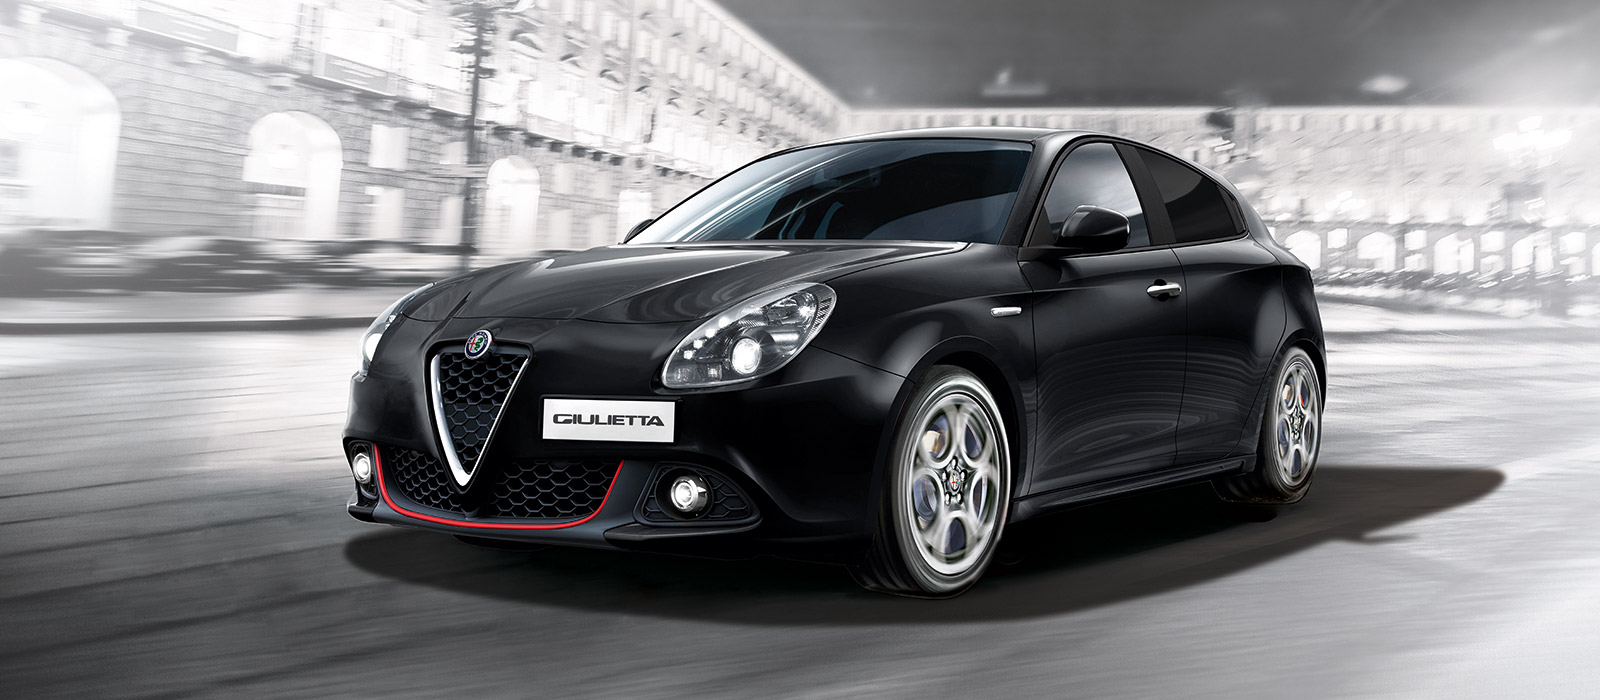 alpha romeo giulietta sport alfa romeo giulietta sport collezione photo alfa romeo giulietta. Black Bedroom Furniture Sets. Home Design Ideas